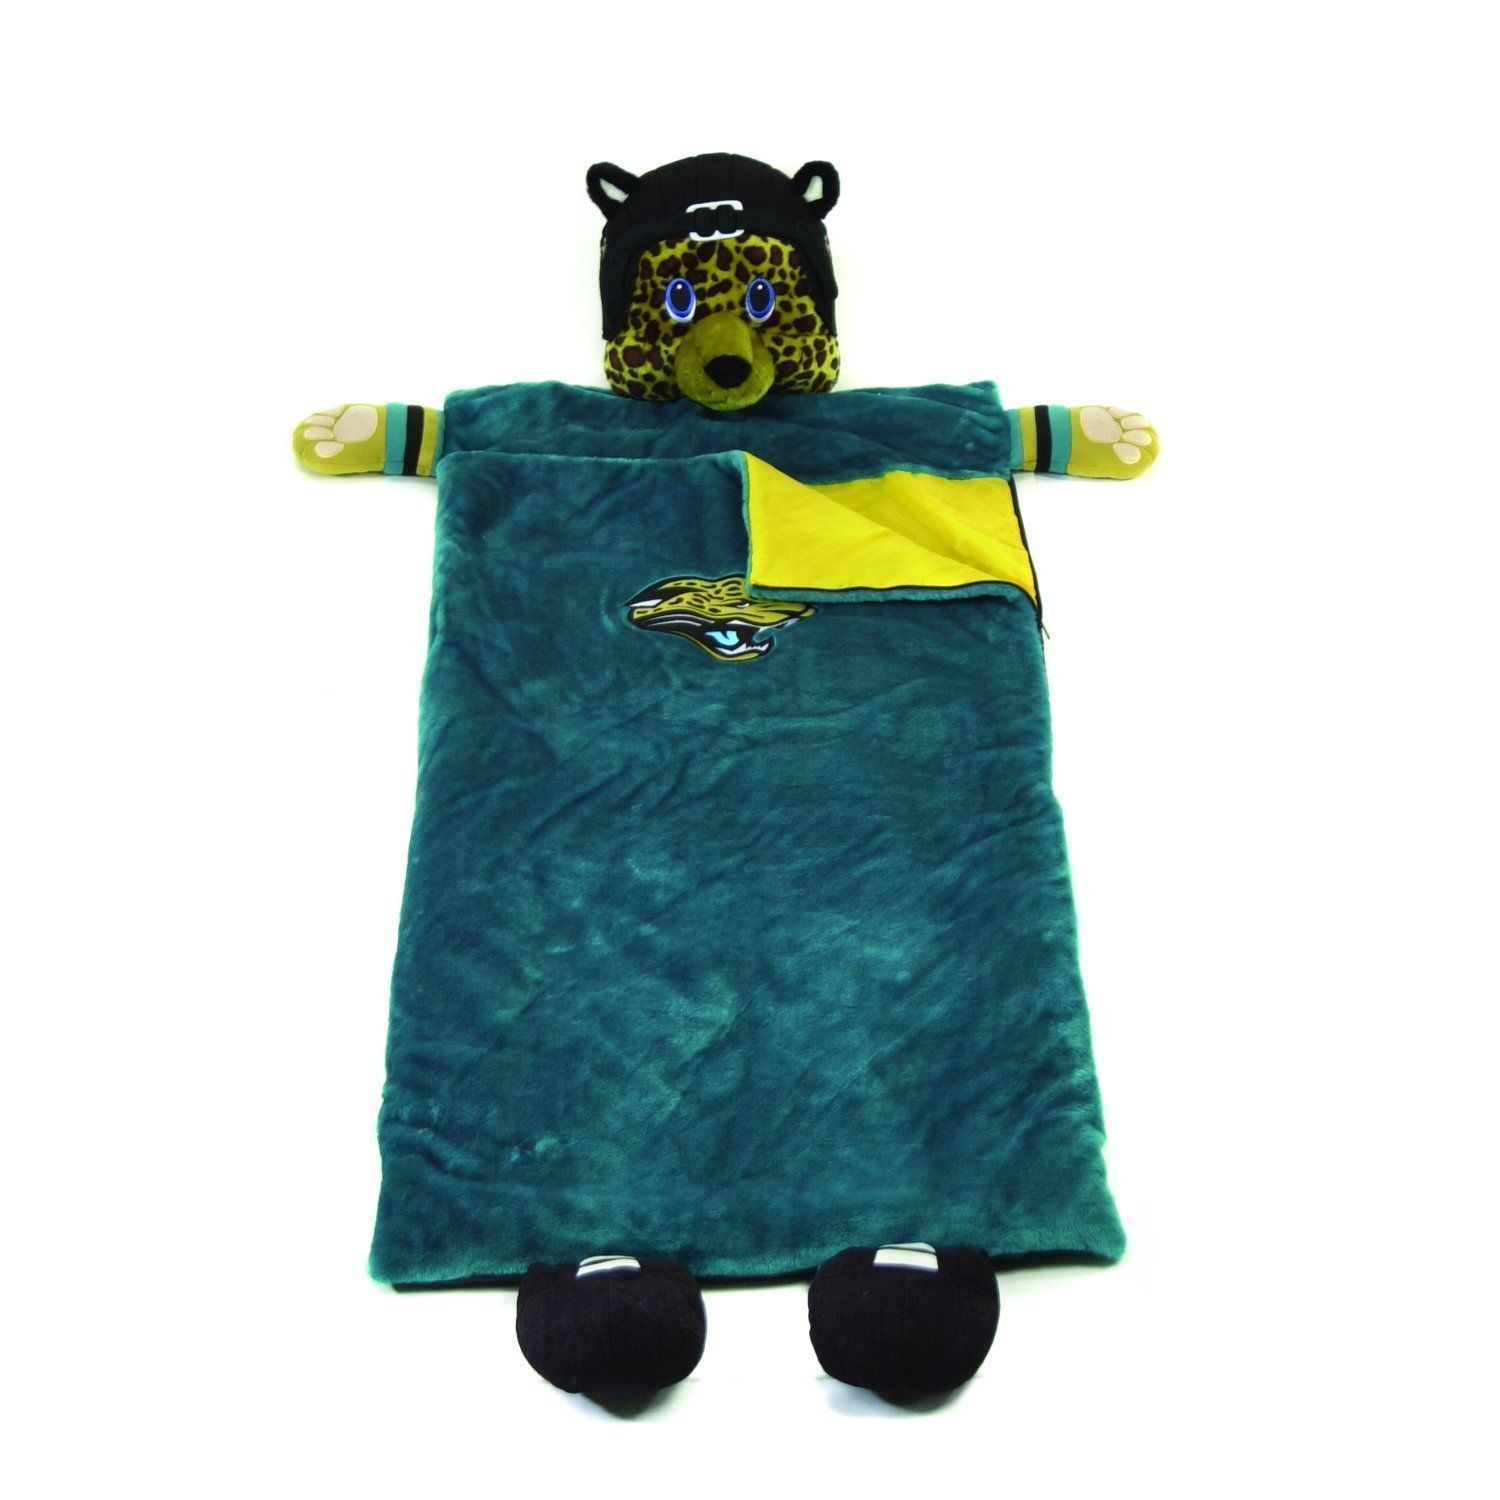 Jacksonville Jaguars Mascot Sleeping Bag New and awesome outdoor